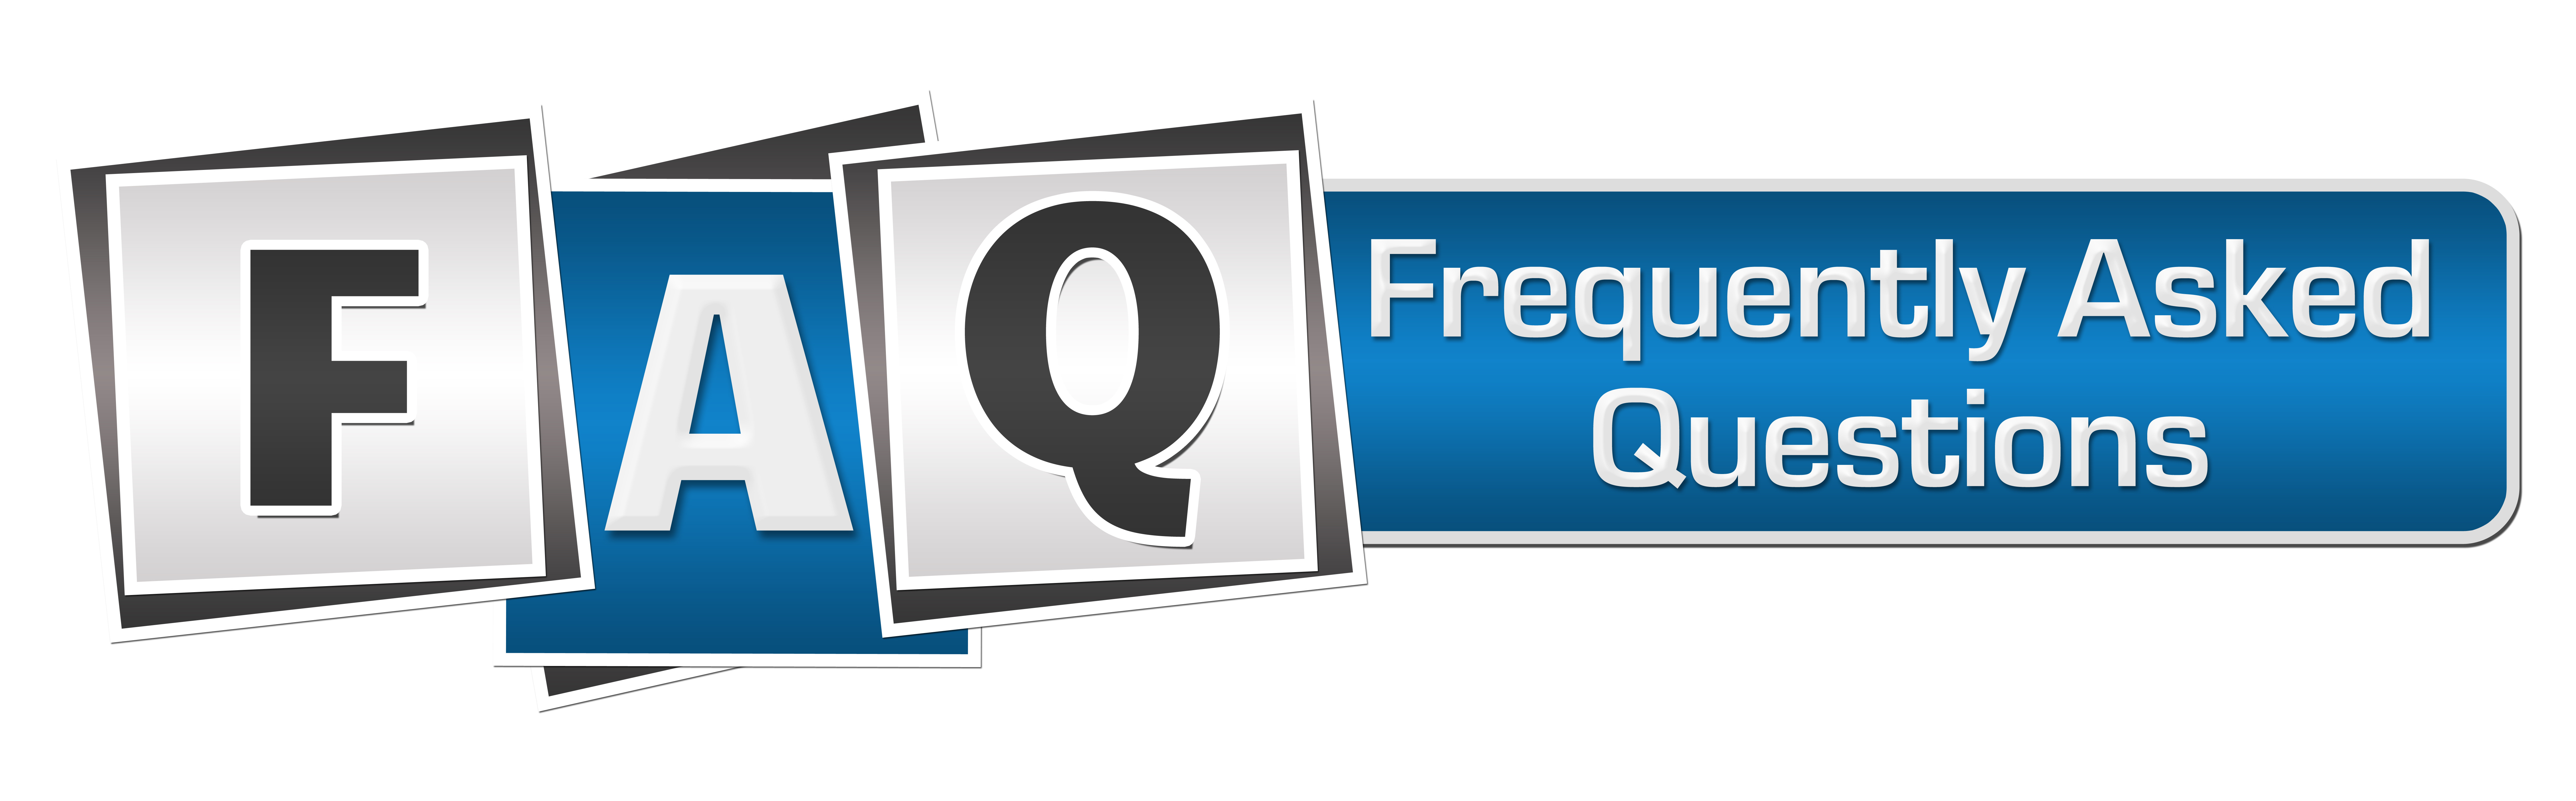 FAQ Blue Grey Squares Bar